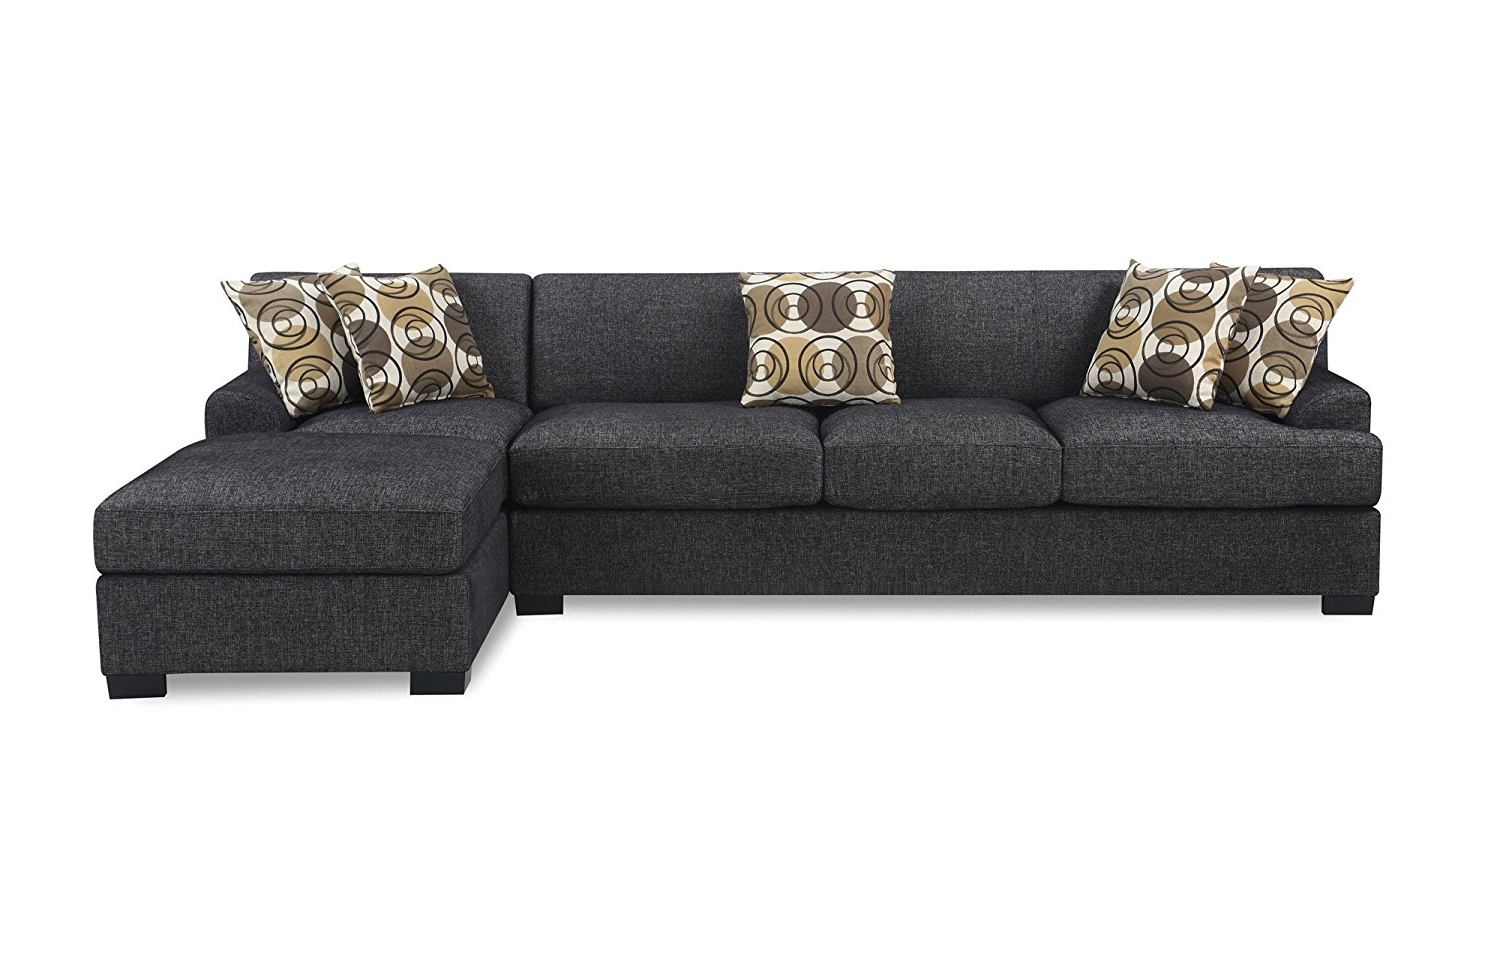 Chaise Sofas For Current Amazon: Bobkona Poundex Benford Collection Faux Linen Chaise (View 3 of 15)